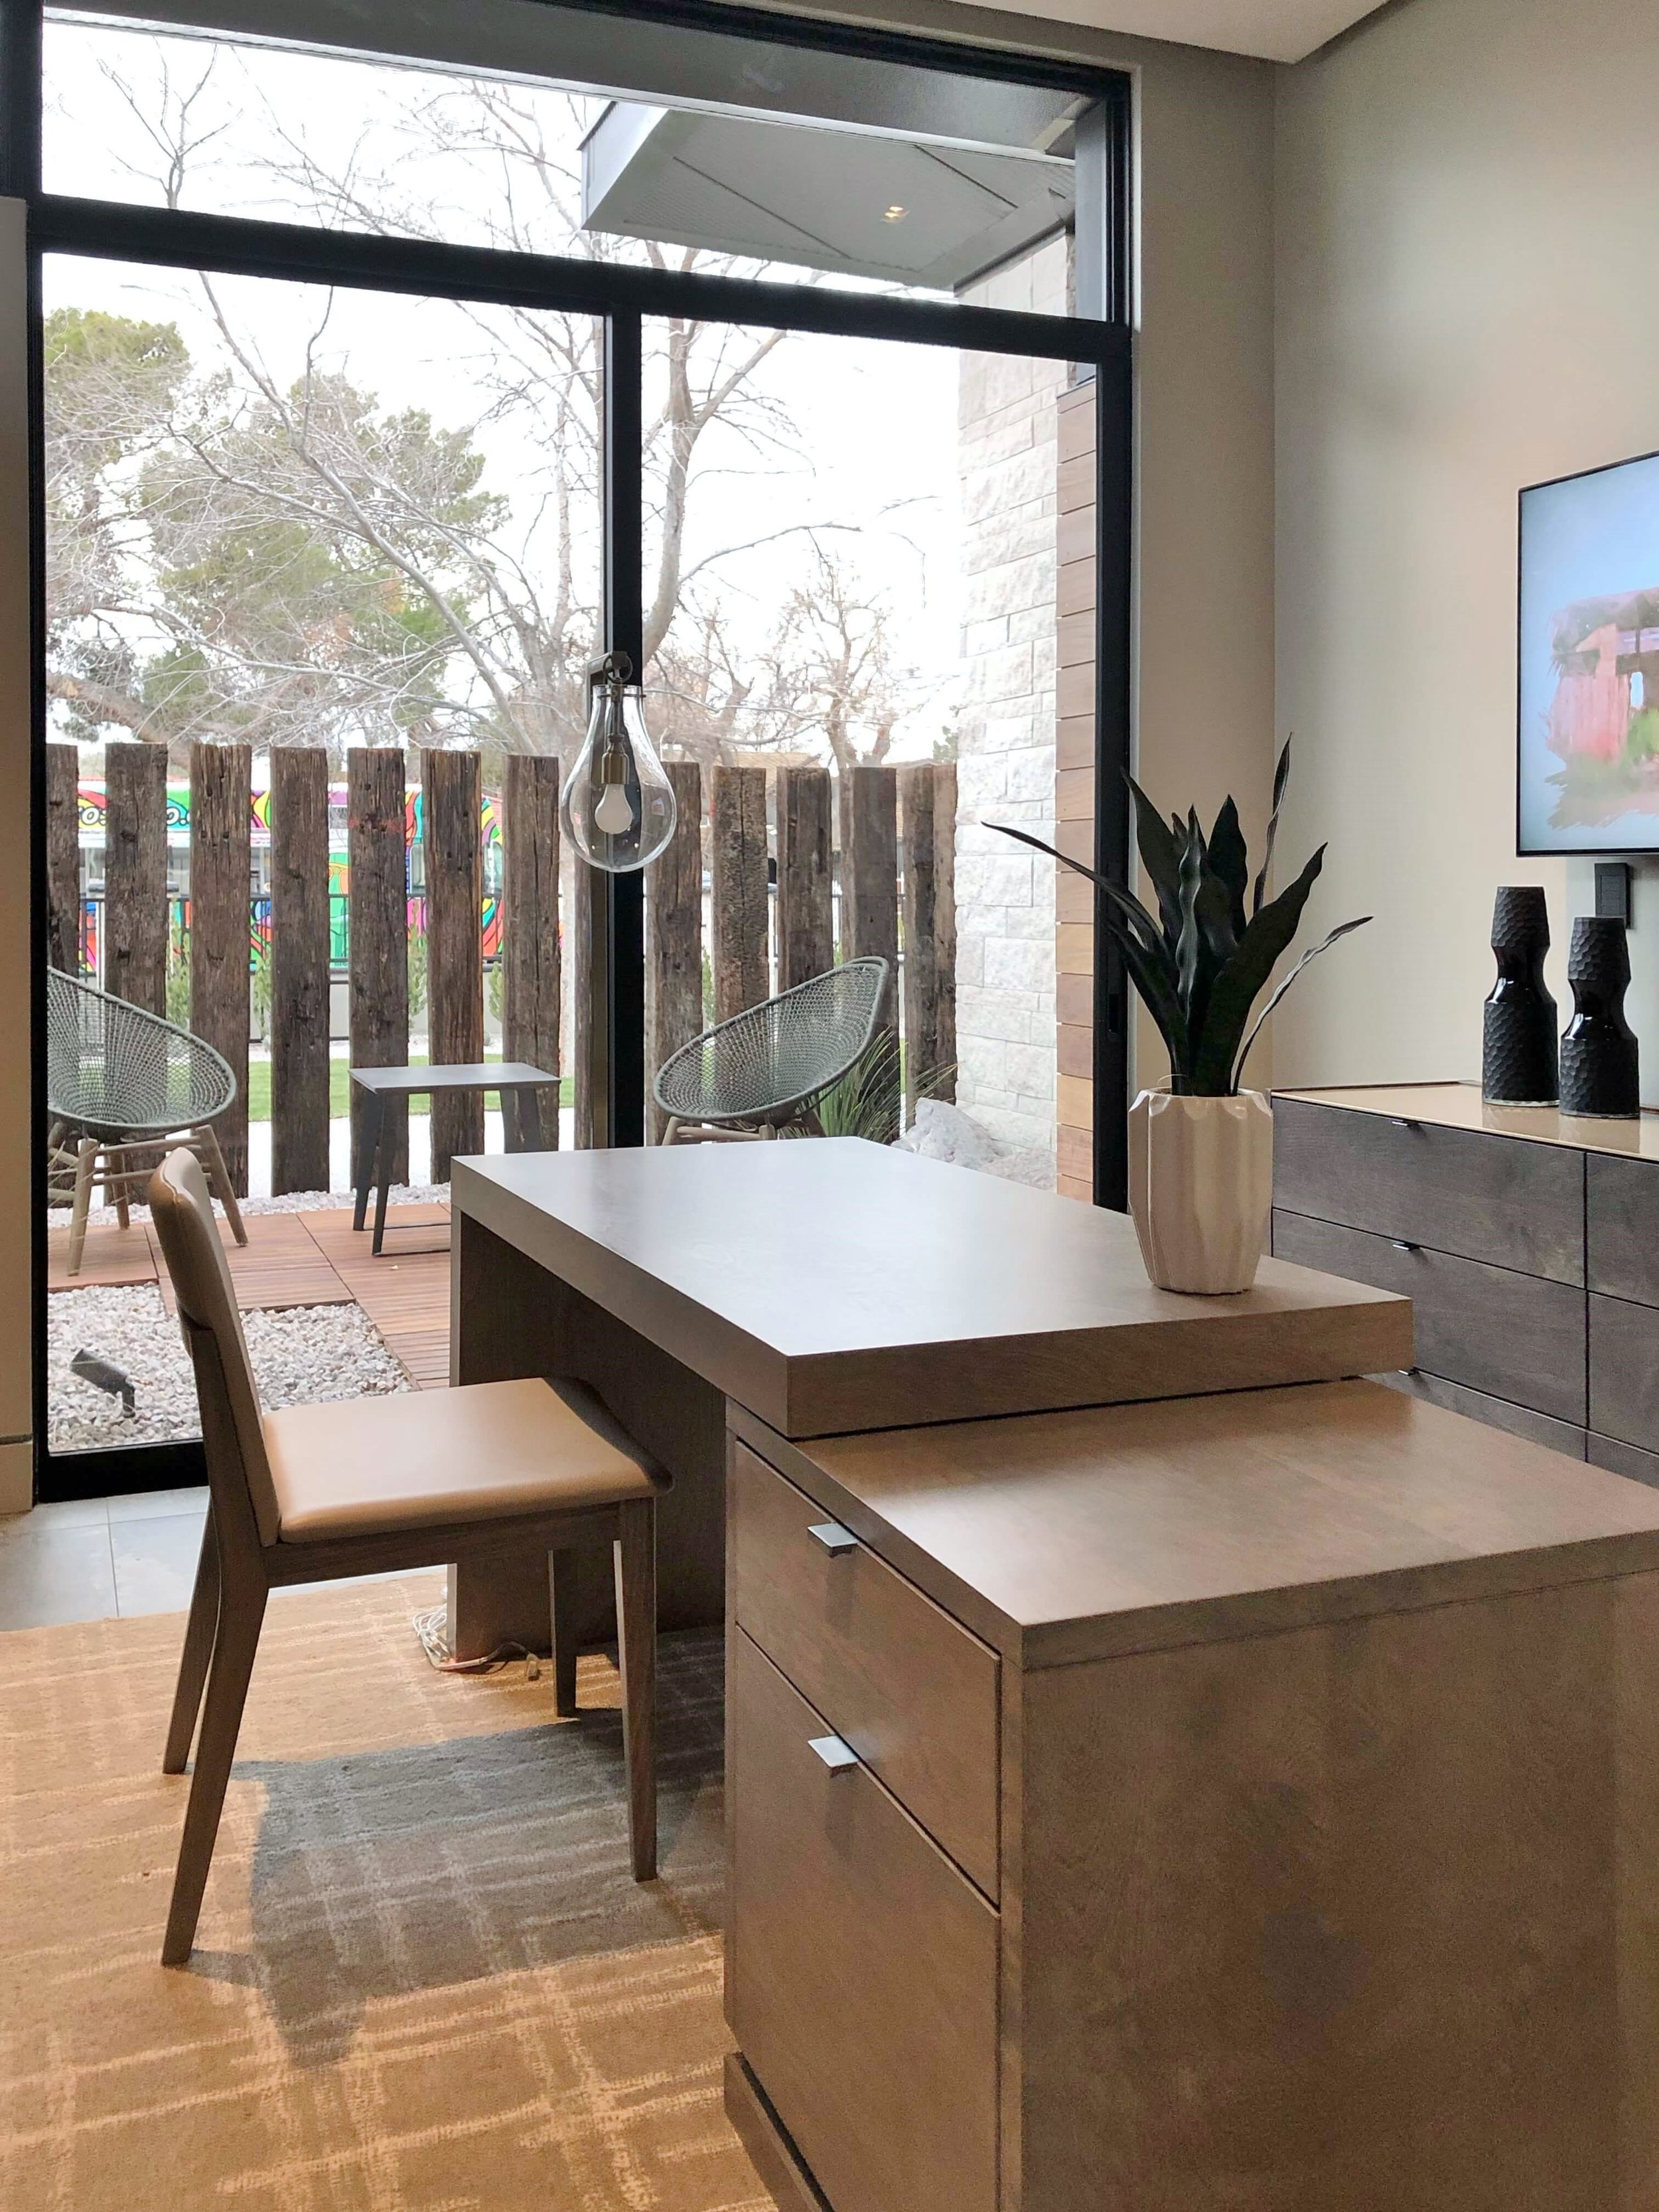 Modern home office with large sliding glass doors in The New American Remodel 2019 #hometour #patio #contemporaryhome #modernhome